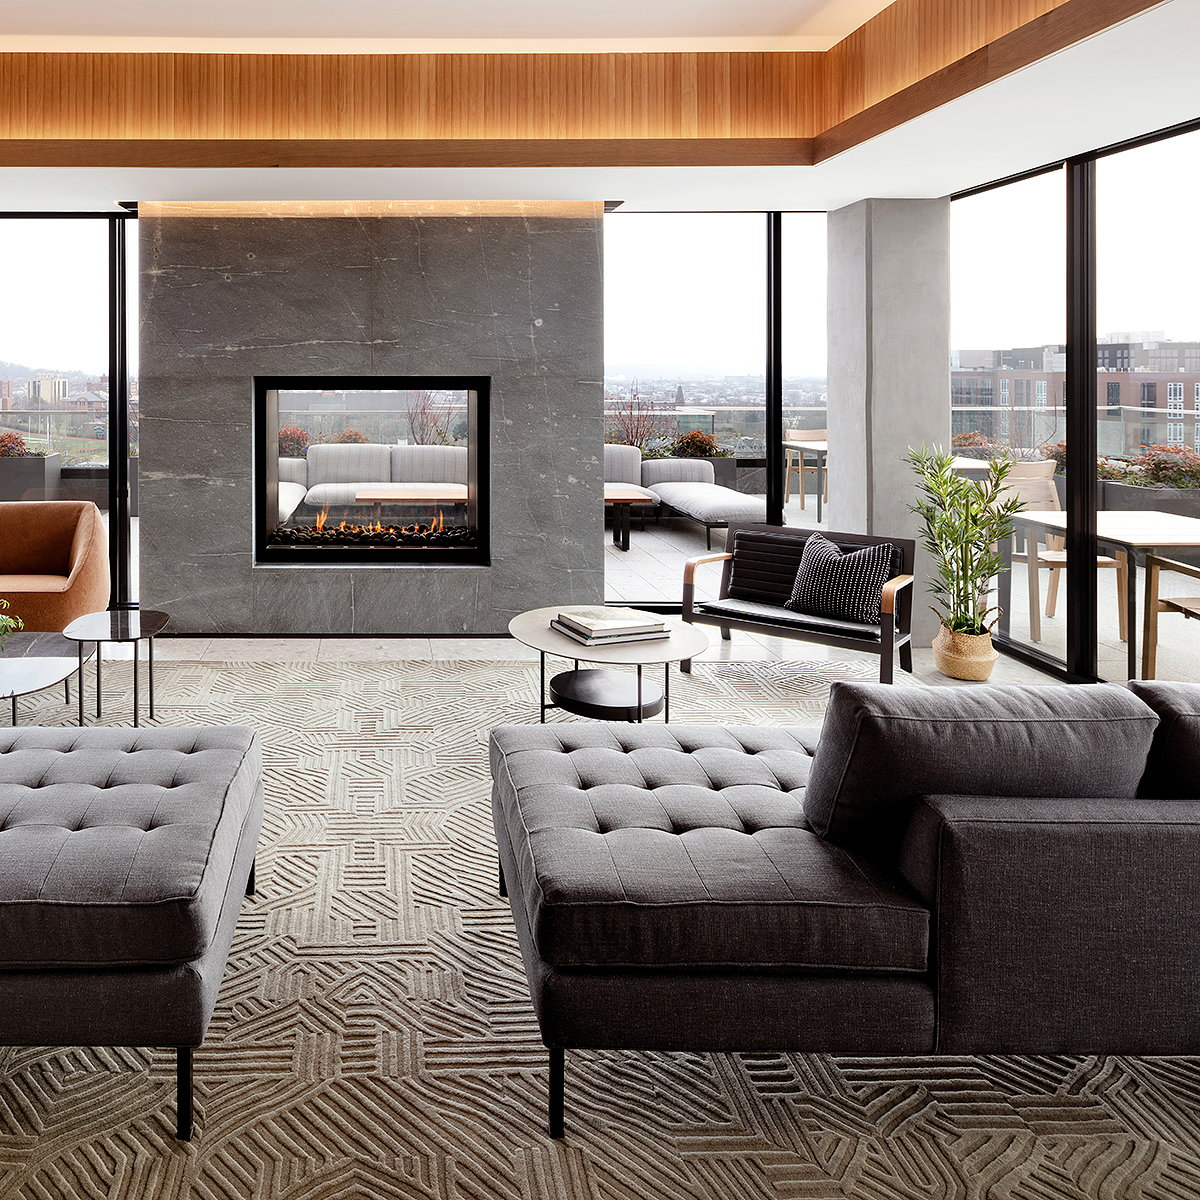 Mason Studio Brings Boutique Hotel Design into Residential Rental Market with DC Project